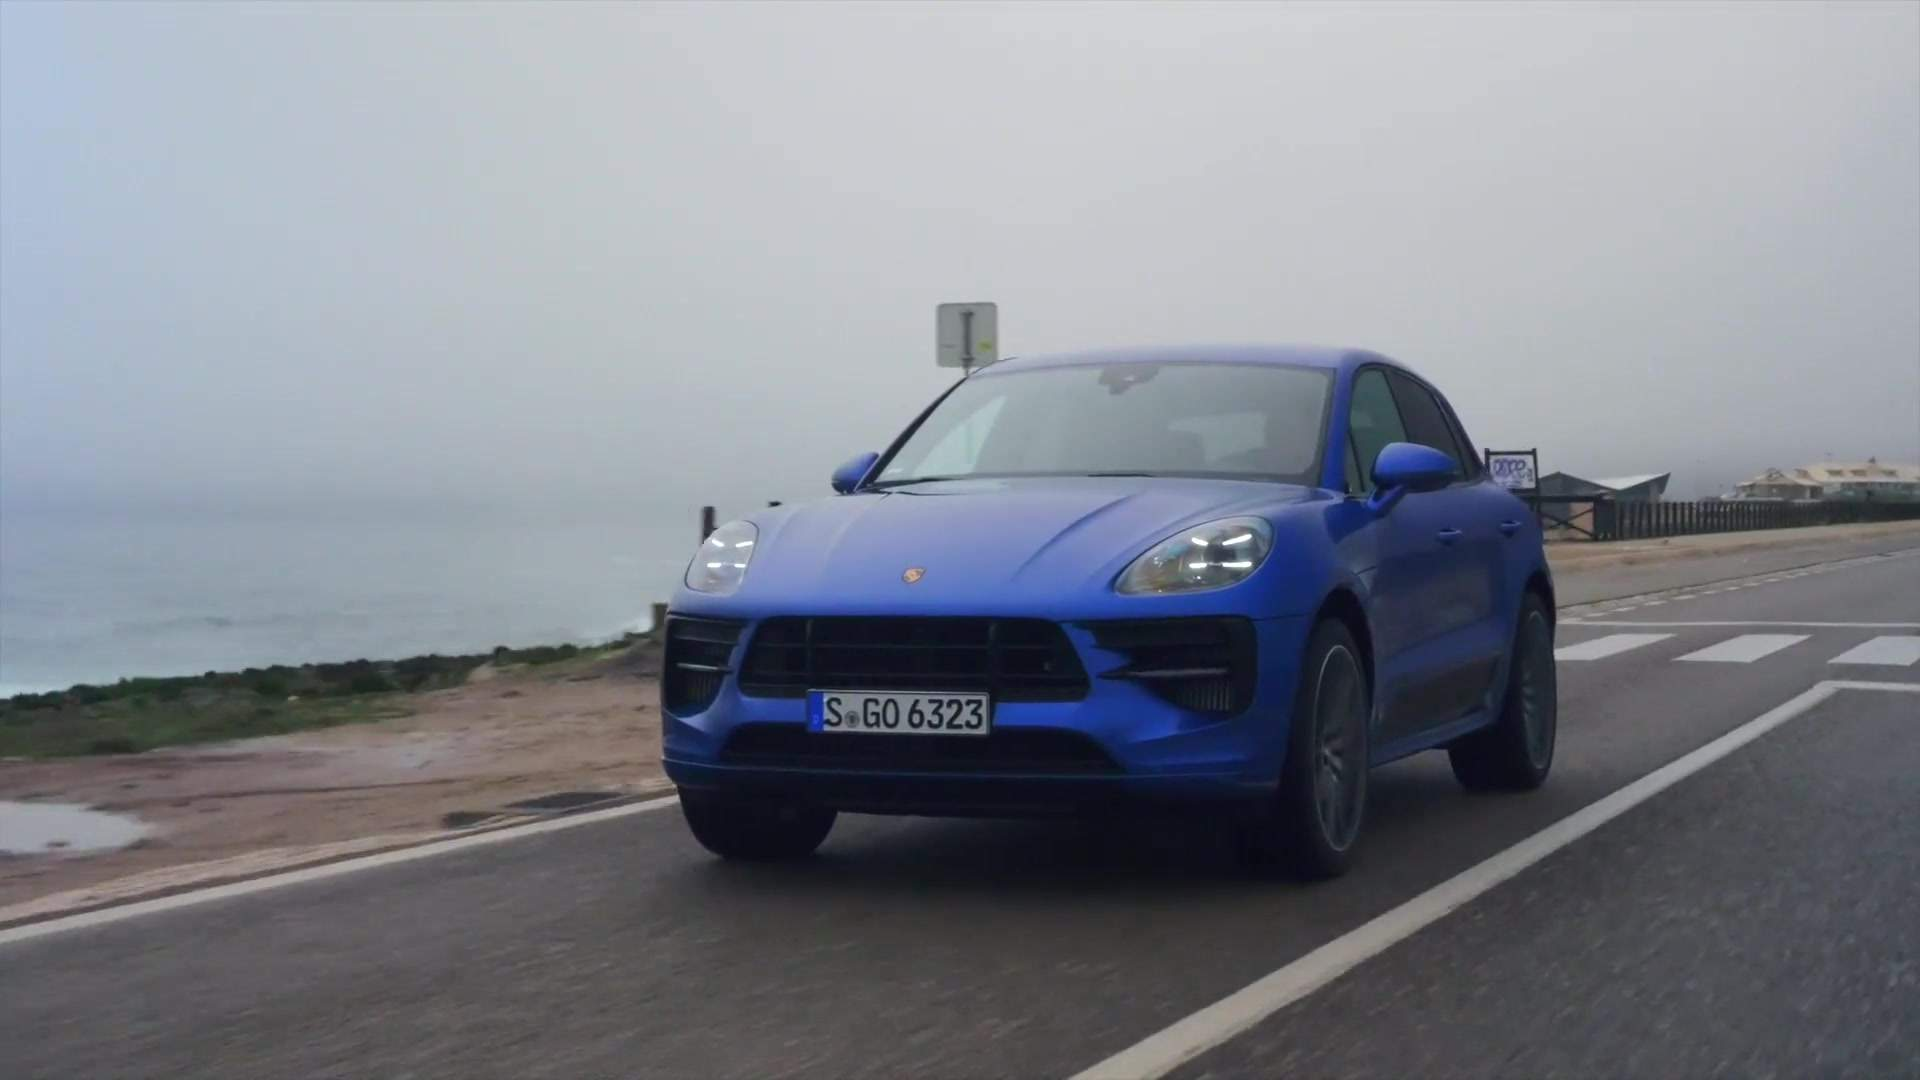 The New Porsche Macan Gts In Sapphire Blue One News Page Video